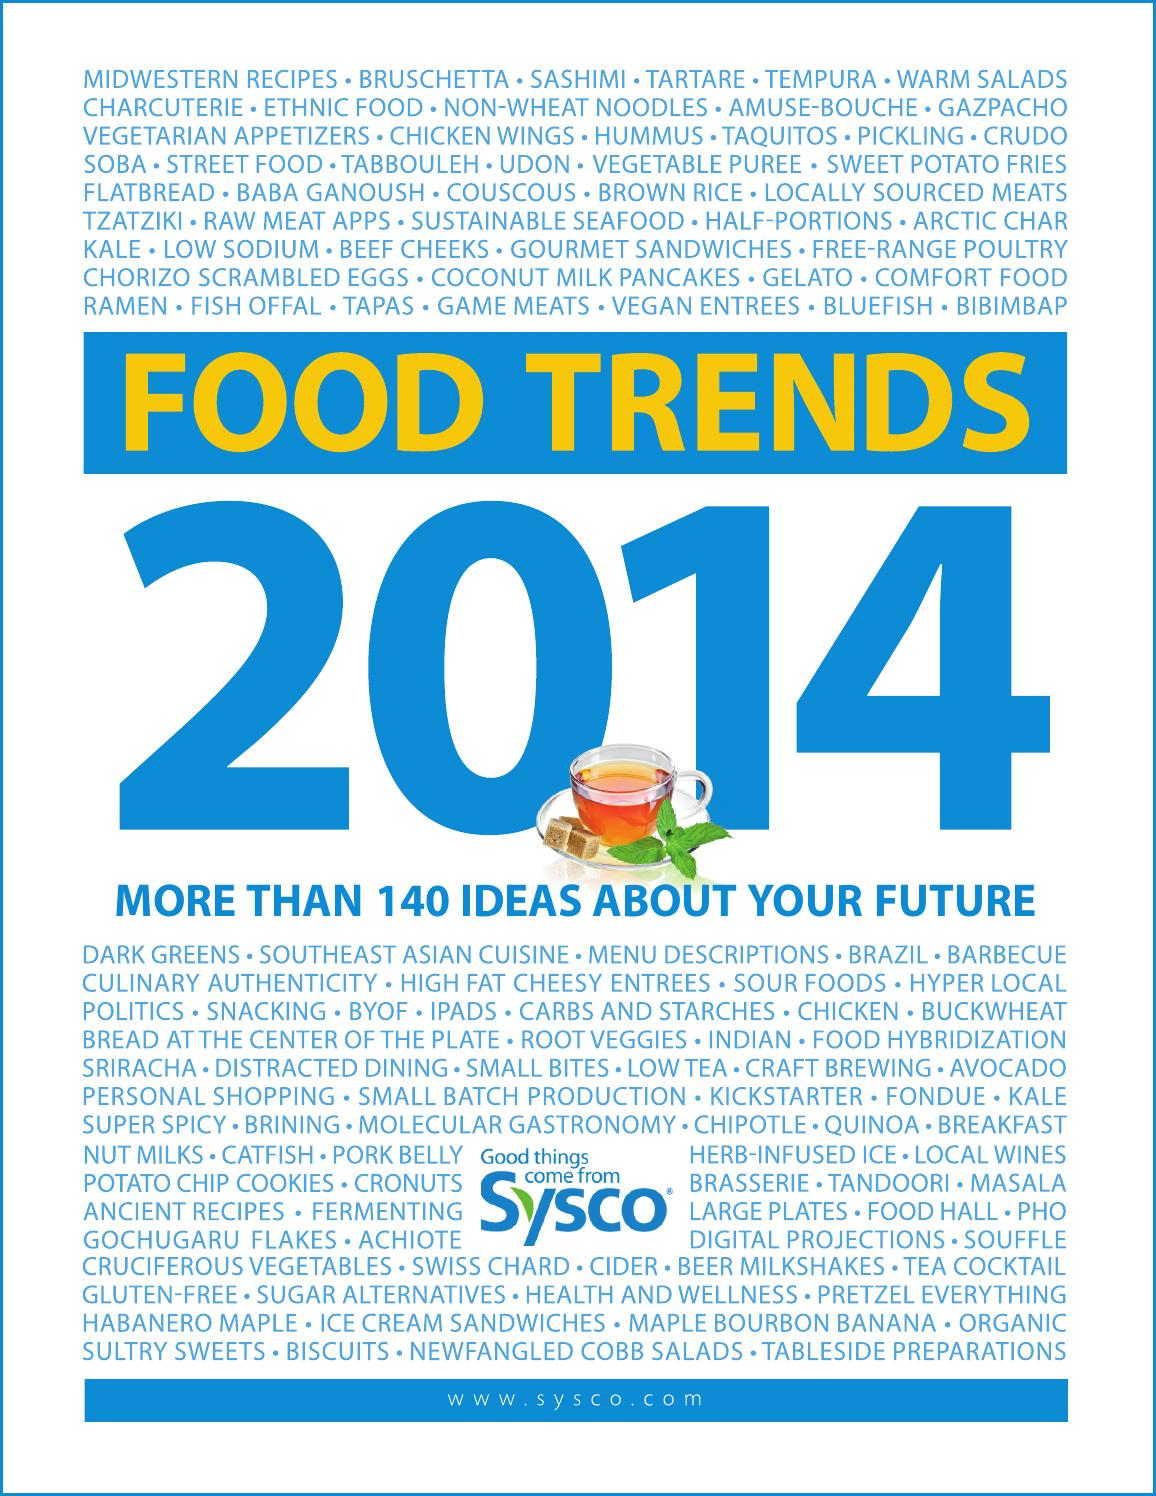 Food Trends 2014 by Sysco Eastern Maryland - issuu